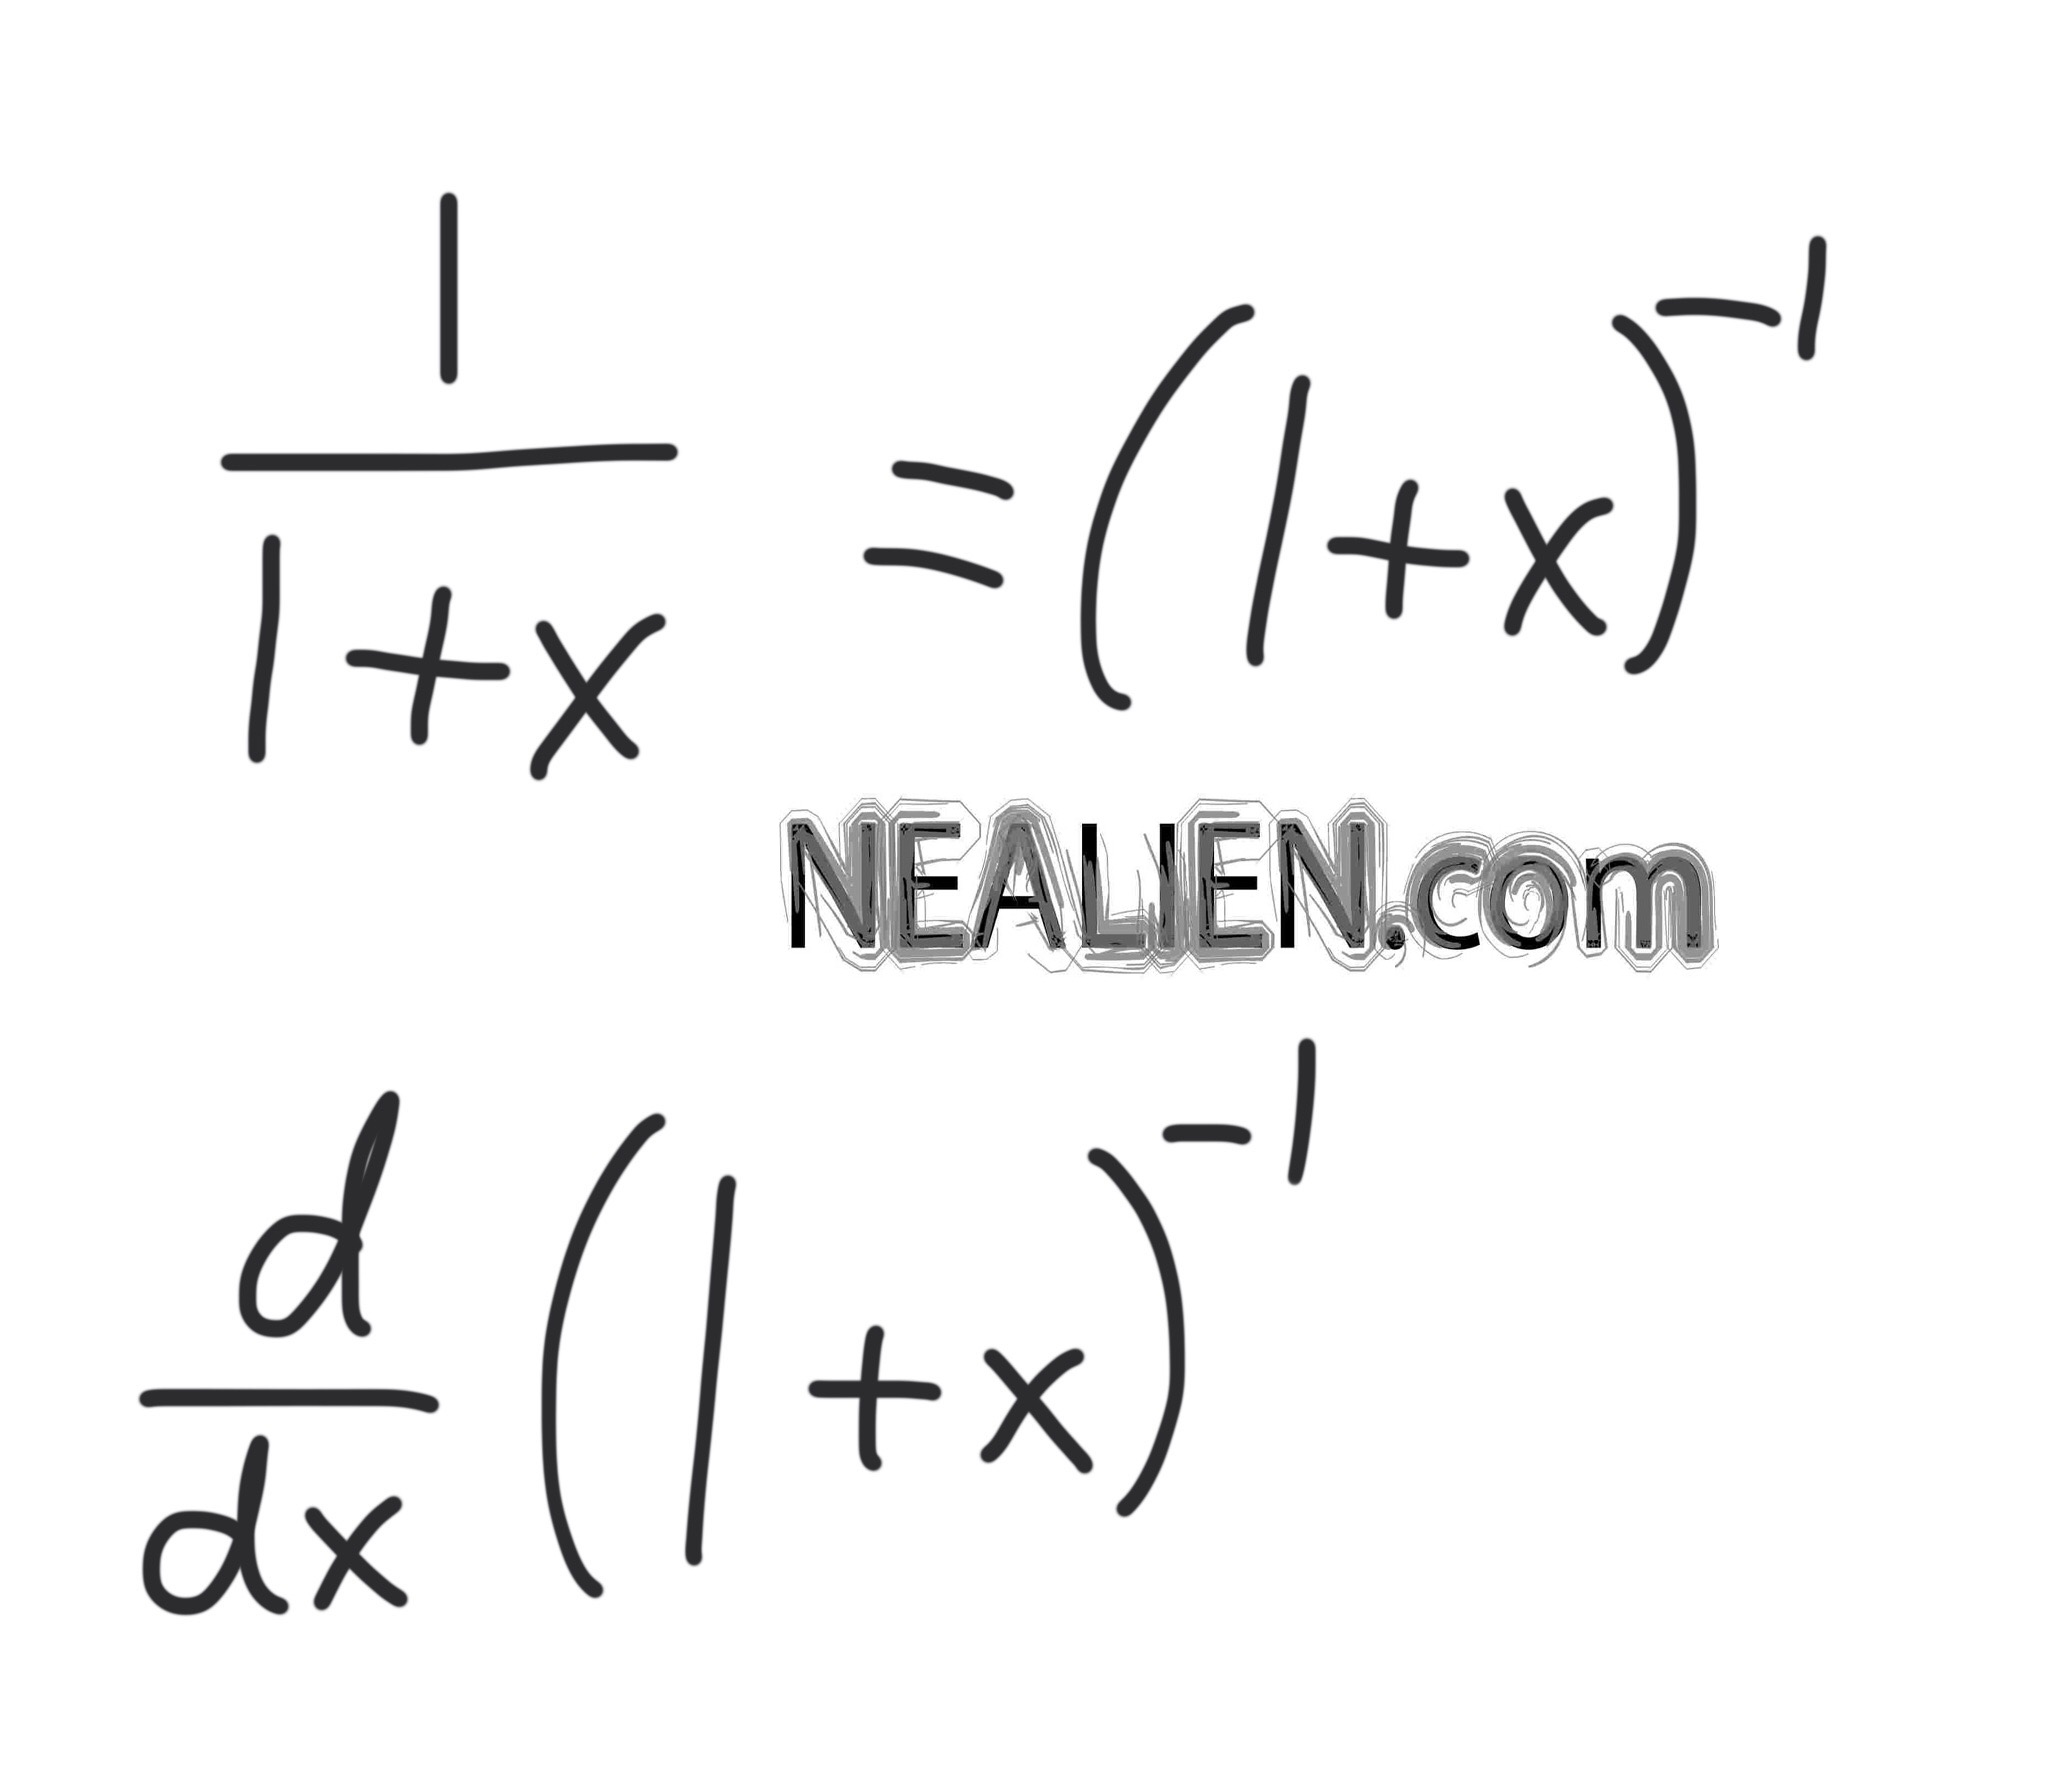 How do we find the derivative of 1/(1+x) ?